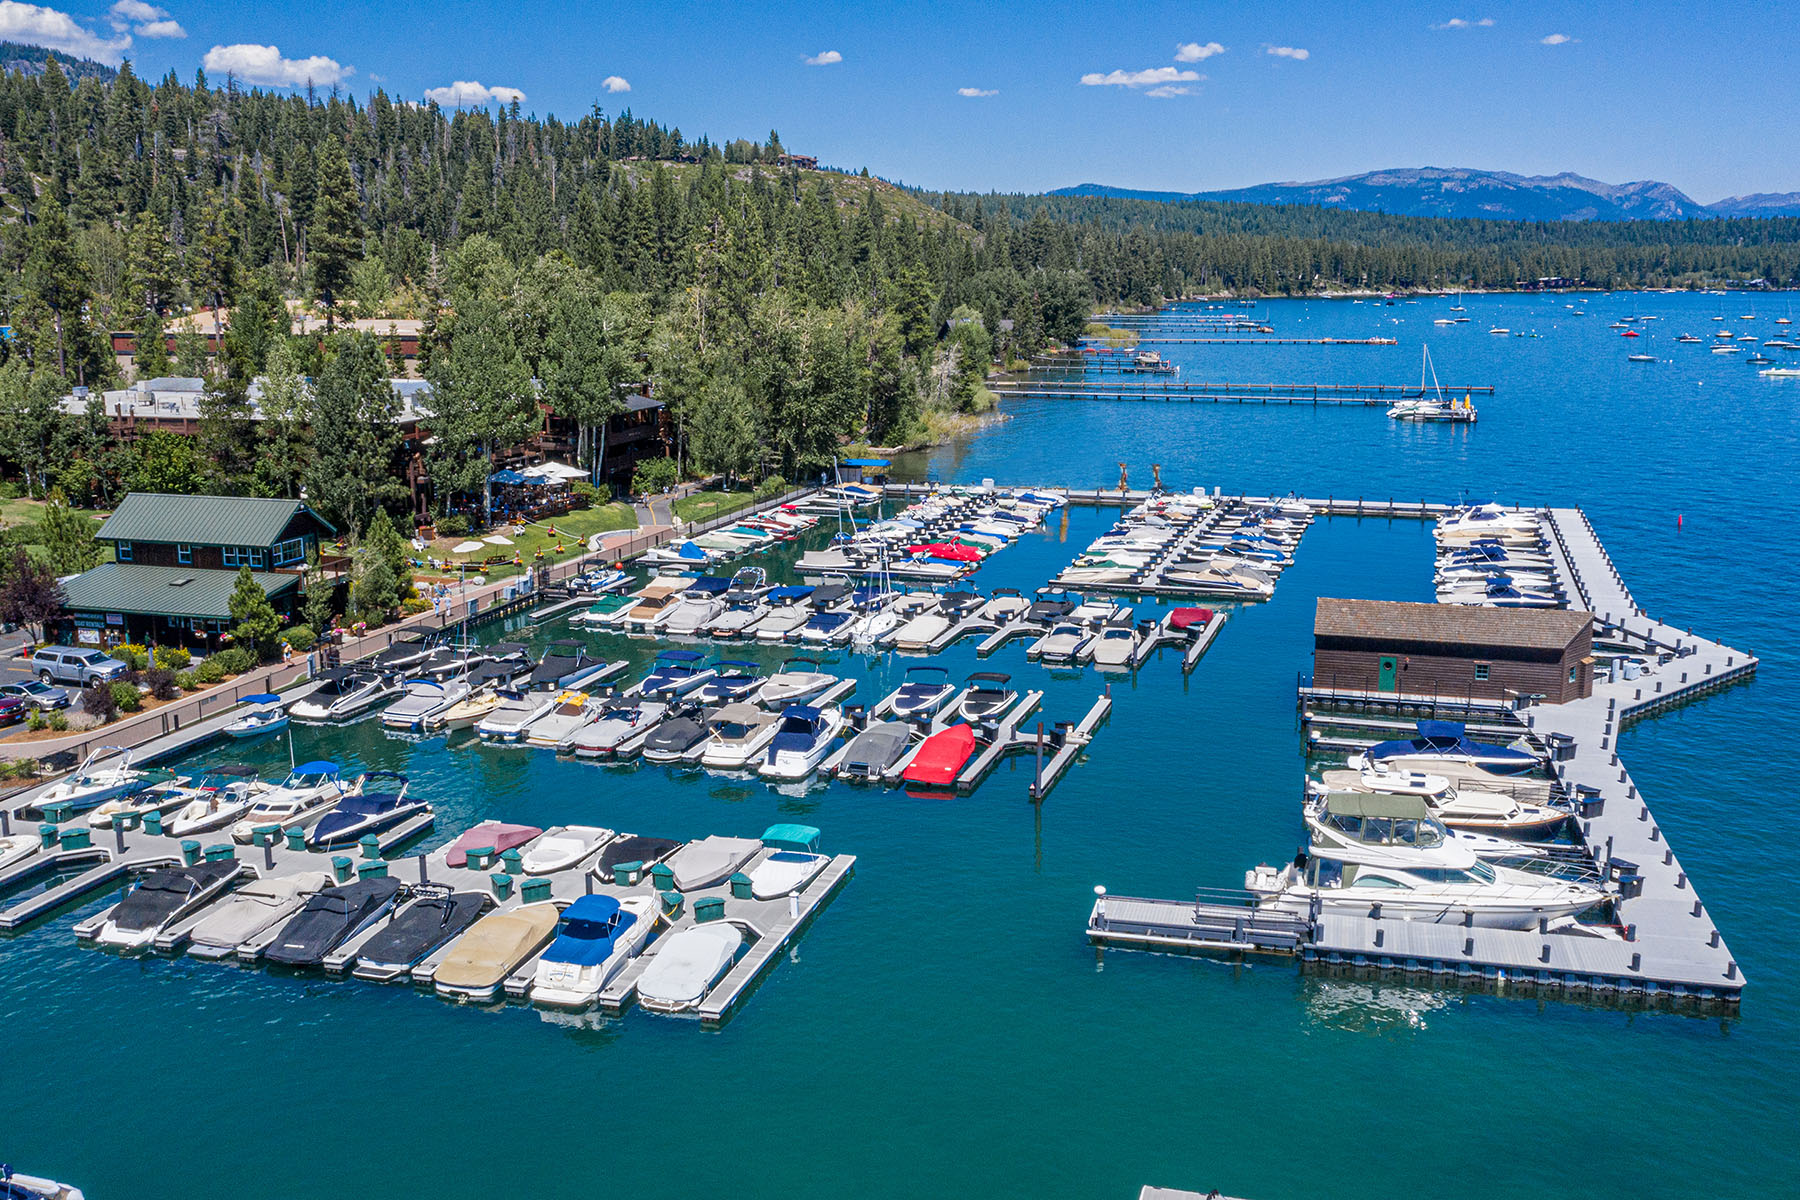 Additional photo for property listing at 700 N Lake Blvd #D-14, Tahoe City, CA 96145 700 N Lake Blvd #D-14 Tahoe City, California 96150 United States